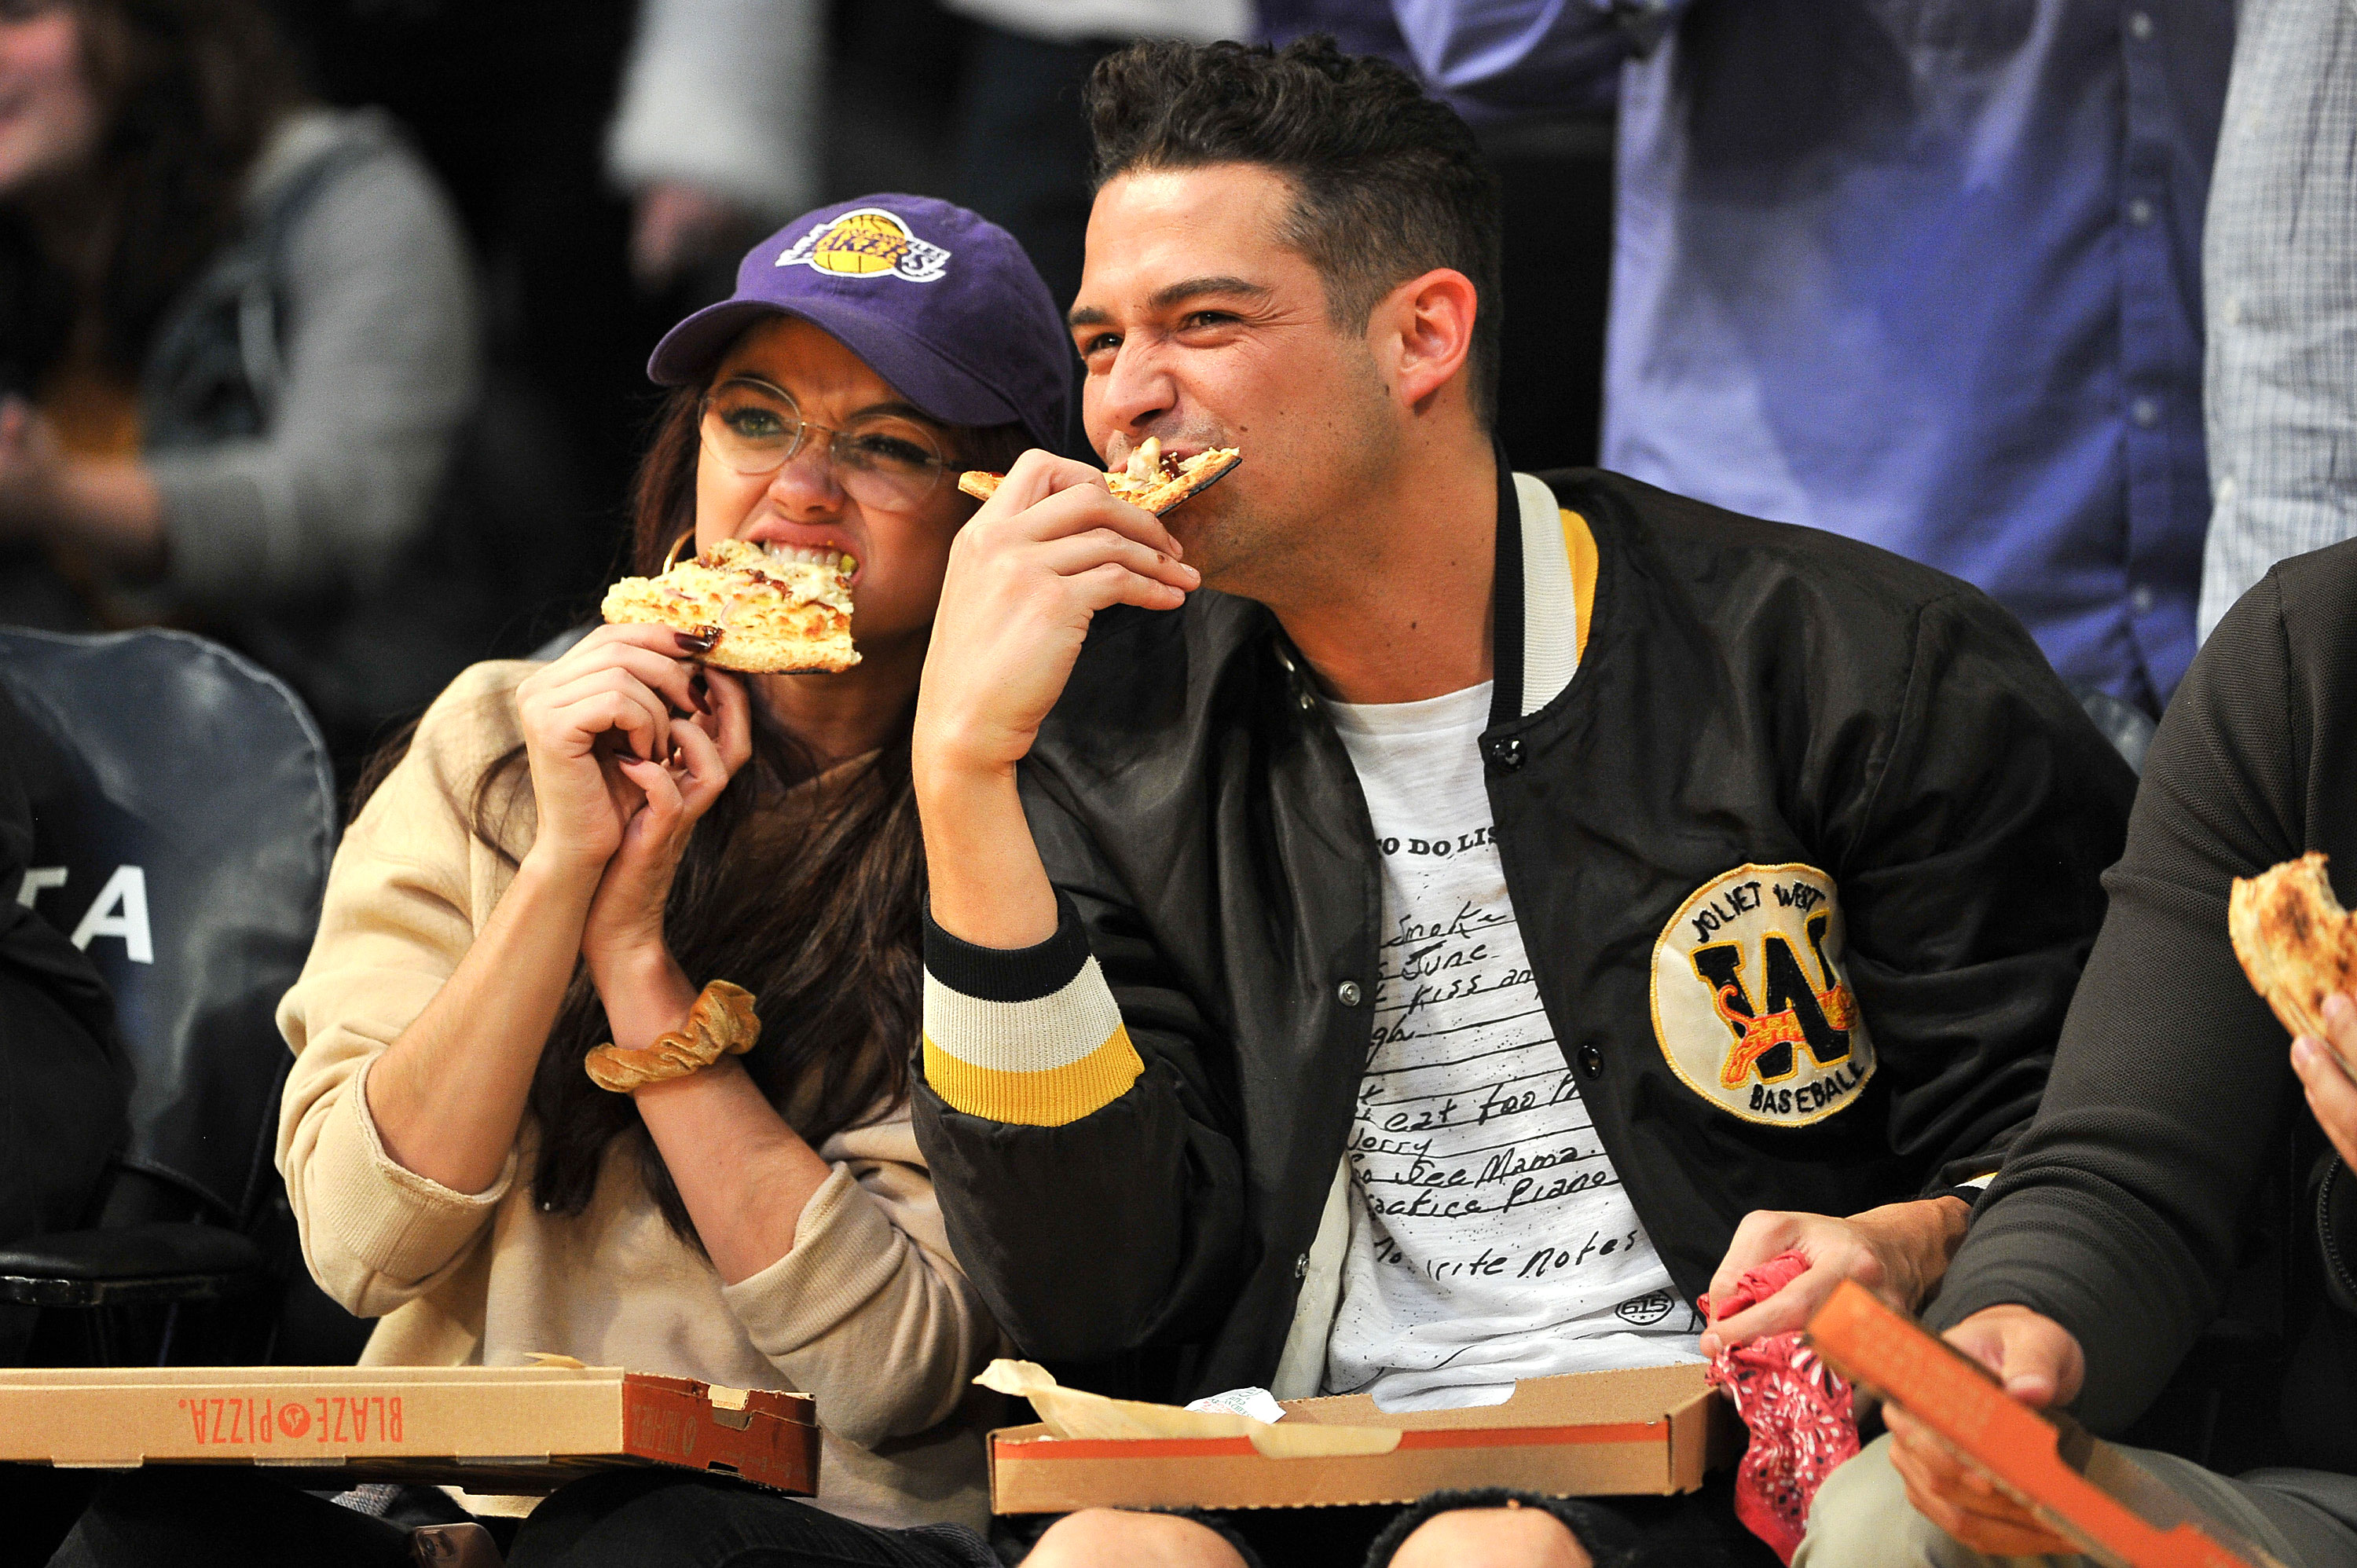 Celebs Eating Courtside - LOS ANGELES, CA – NOVEMBER 21: Actress Sarah Hyland and boyfriend Wells Adams attend a basketball game between the Los Angeles Lakers and the Chicago Bulls at Staples Center on November 21, 2017 in Los Angeles, California. (Photo by Allen Berezovsky/Getty Images)